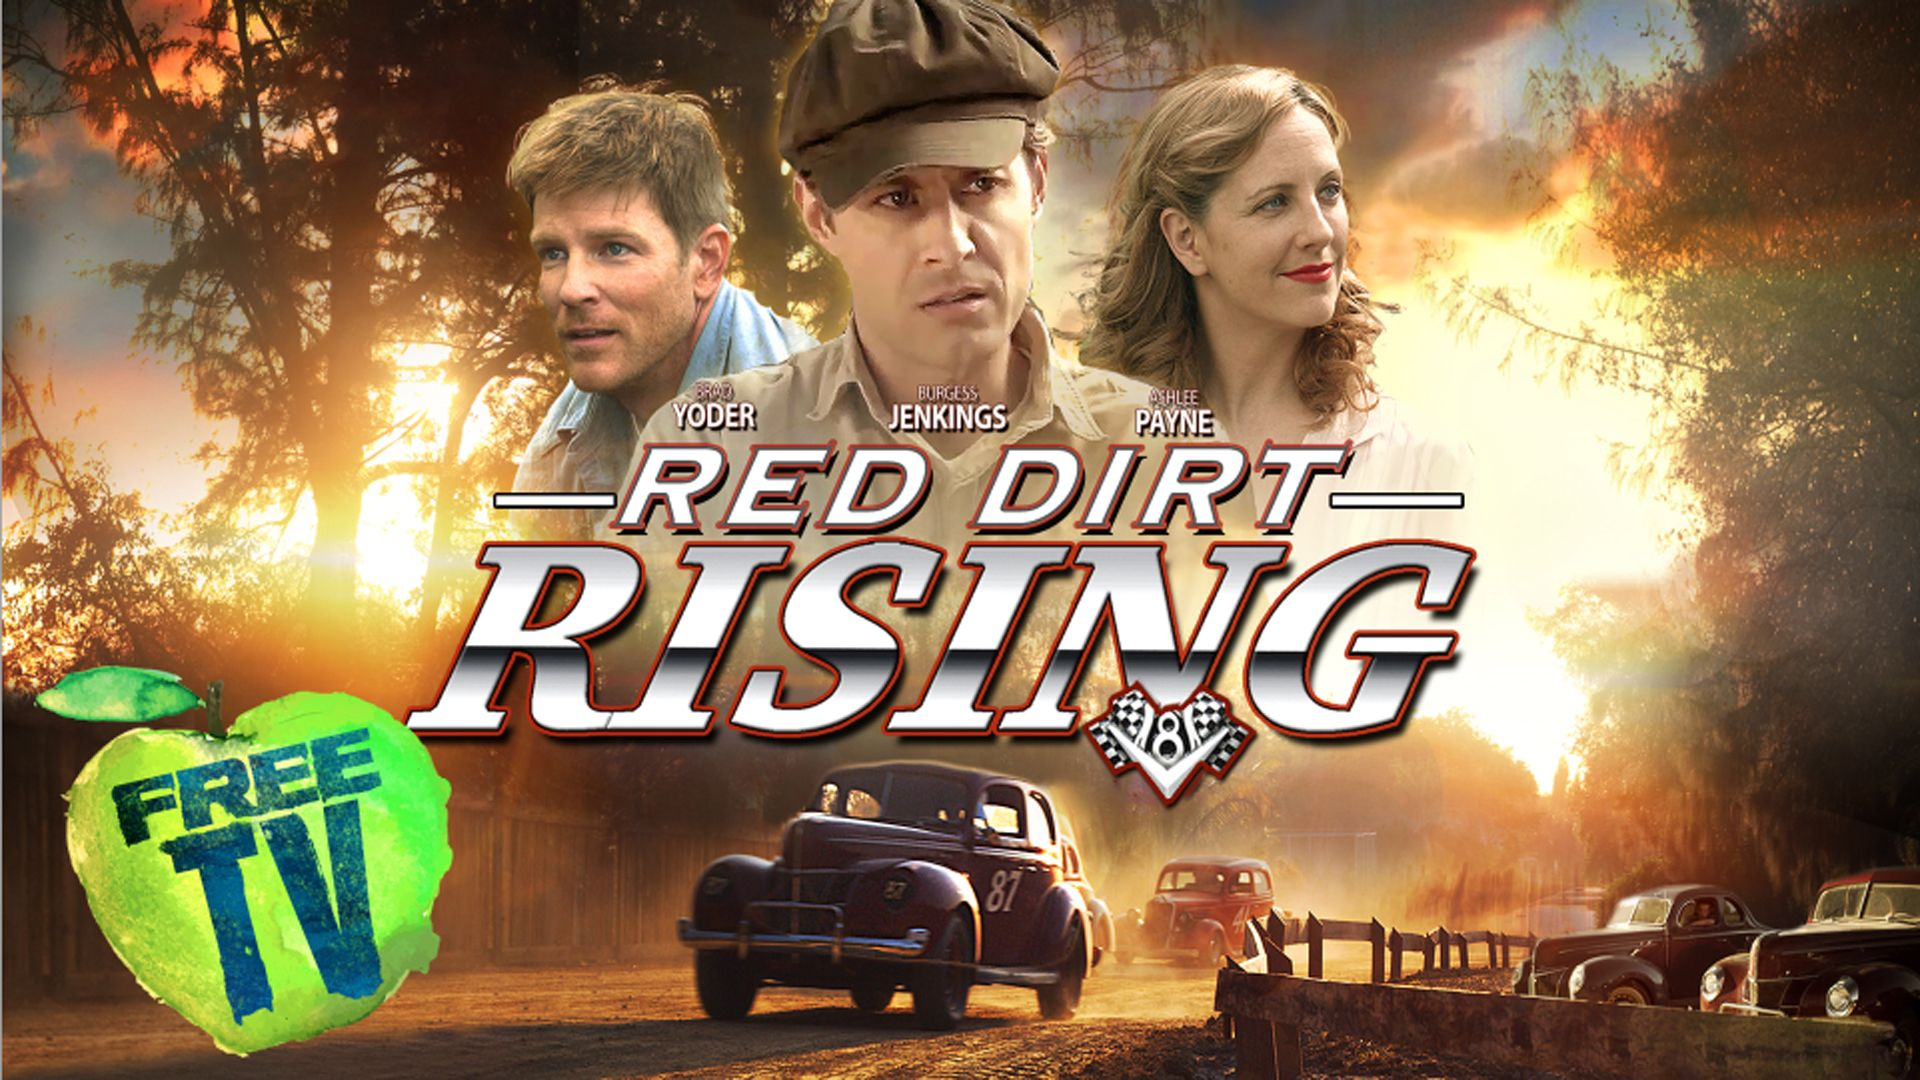 Red dirt rising red dirt kid movies family show